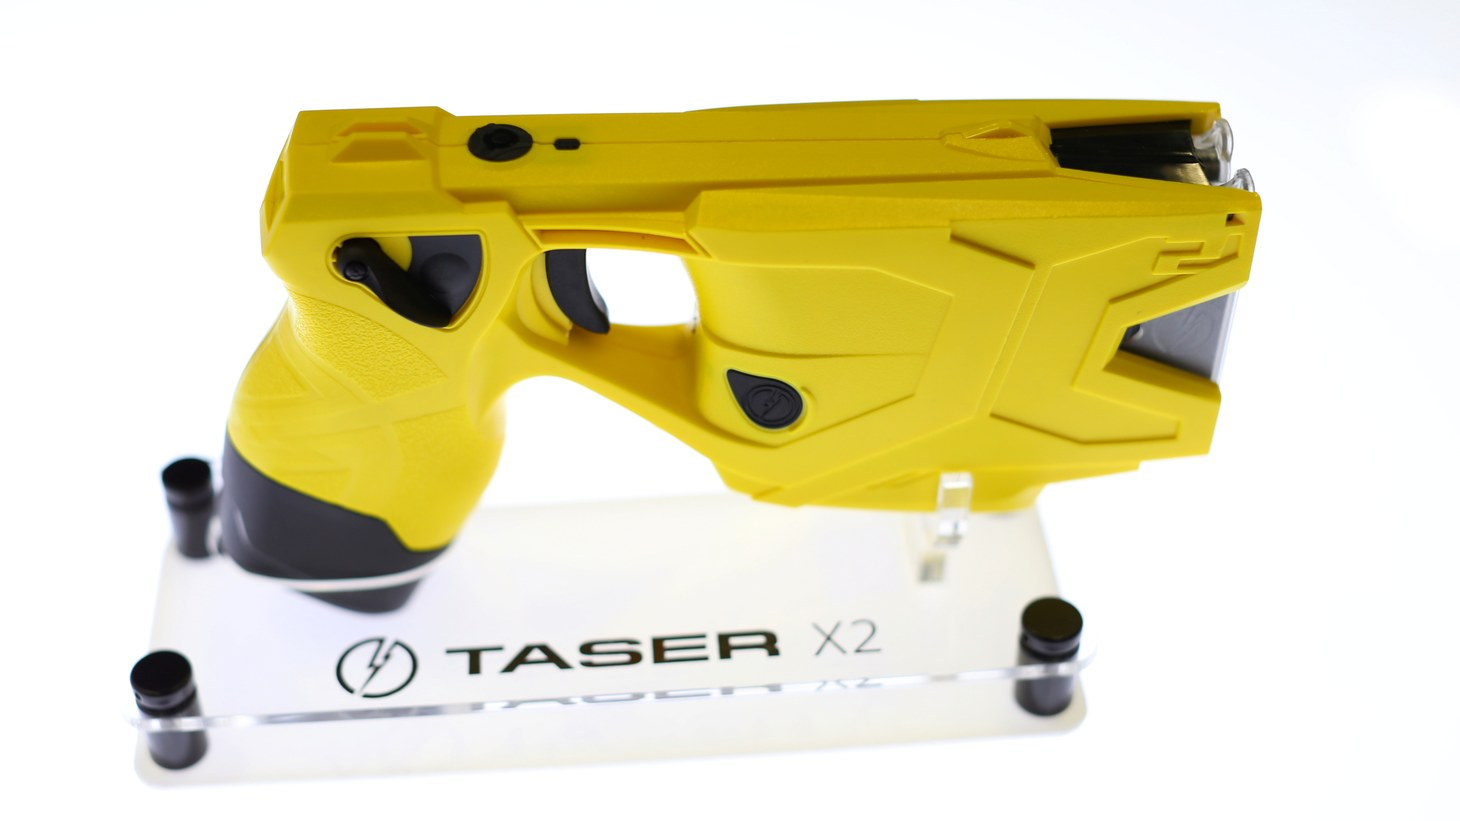 The Taser X2 gun is on display at the International Association of Chiefs of Police conference in San Diego, California, U.S. October 17, 2016.